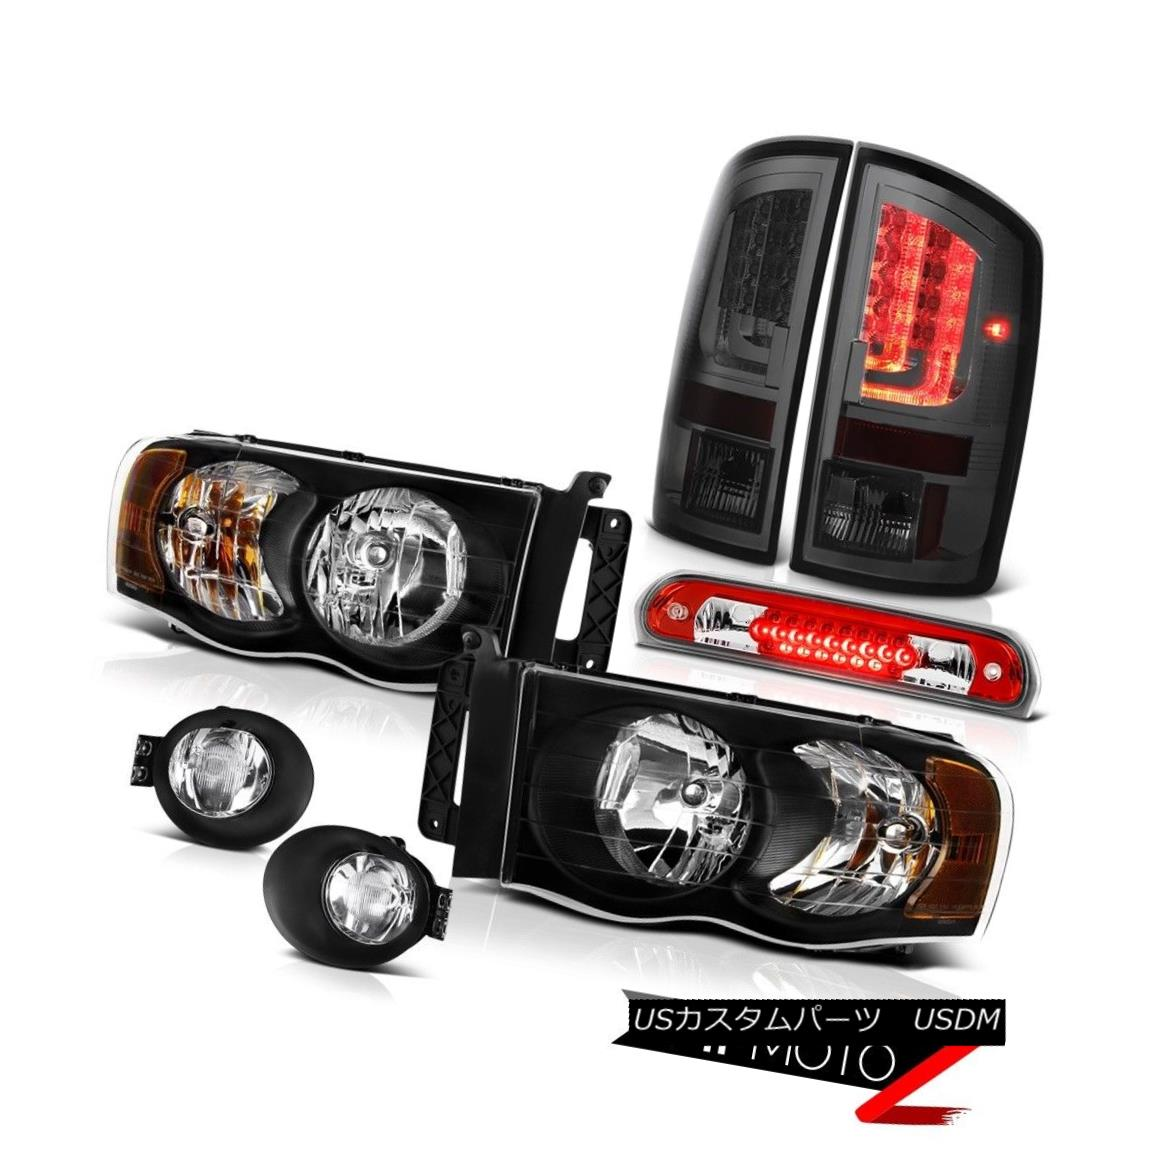 テールライト 2002-2005 Dodge Ram 1500 ST Tail Lamps Fog Headlamps High STop Light Replacement 2002-2005 Dodge Ram 1500 STテールランプフォグヘッドランプHigh STOPライト交換